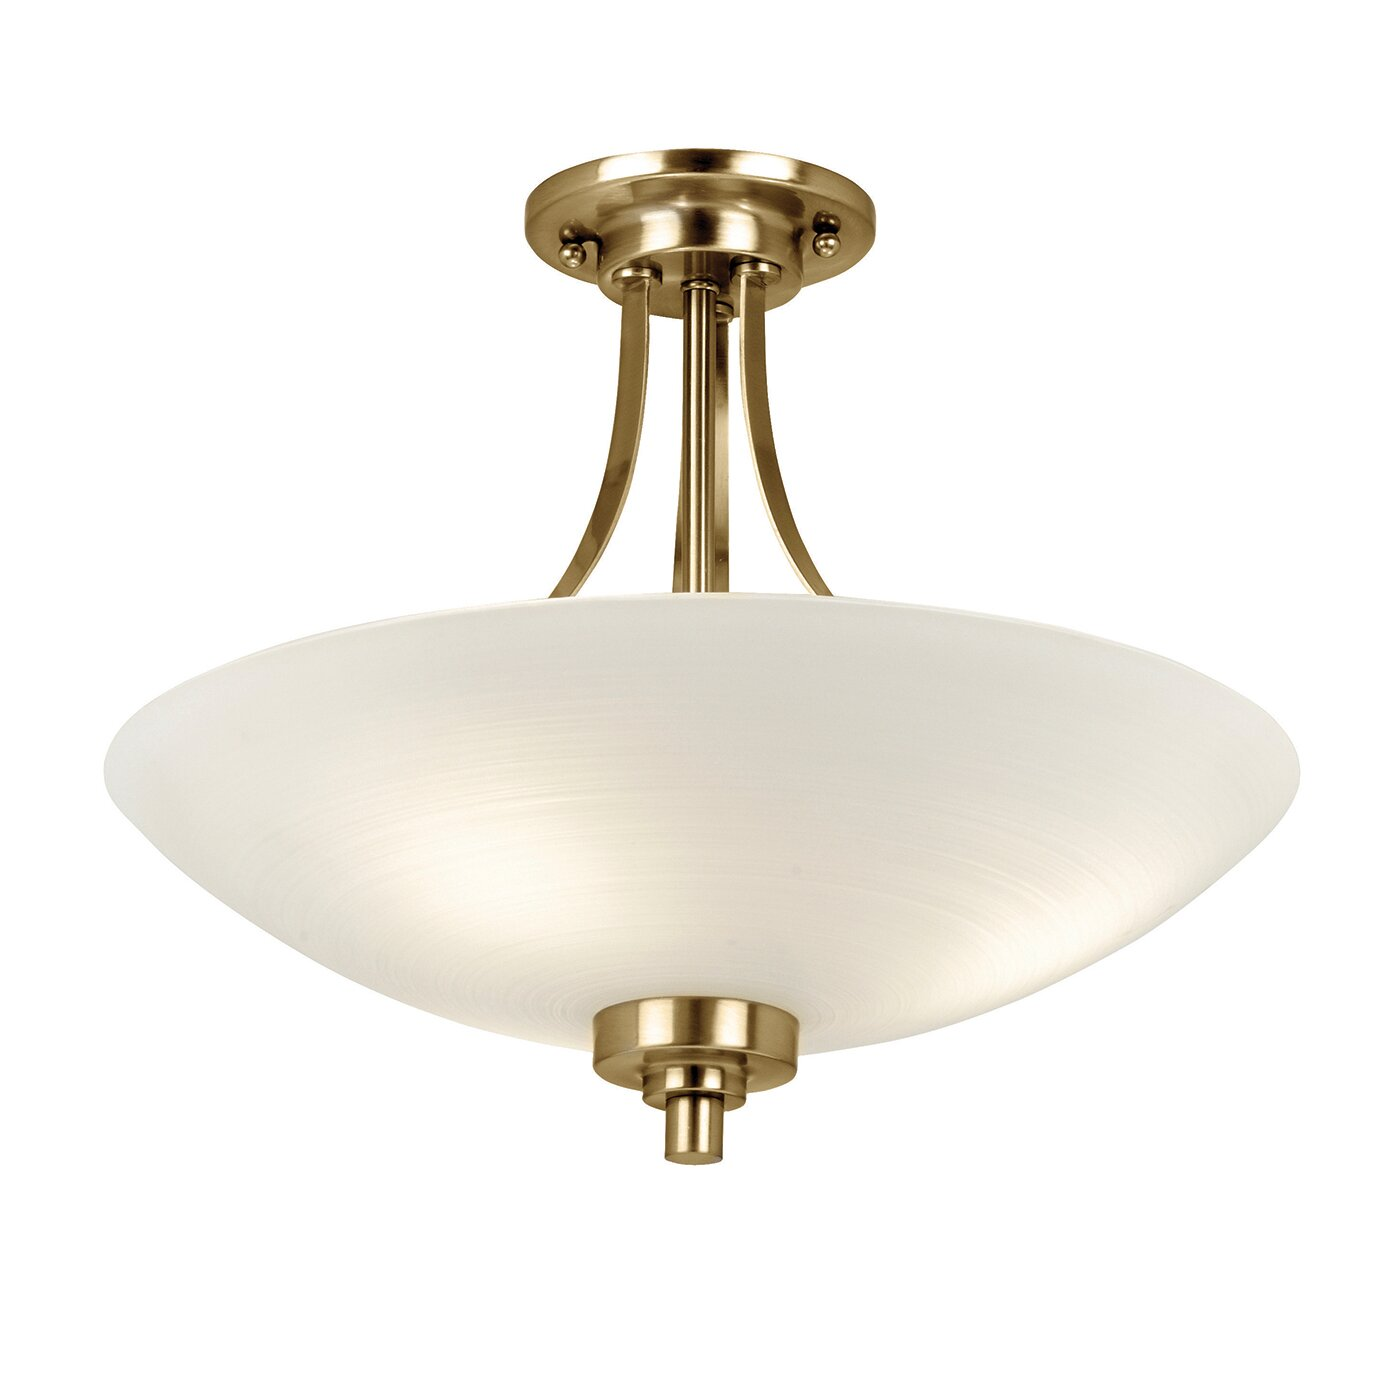 Wayfair Lights: Endon Lighting Welles 3 Light Semi-Flush Ceiling Light